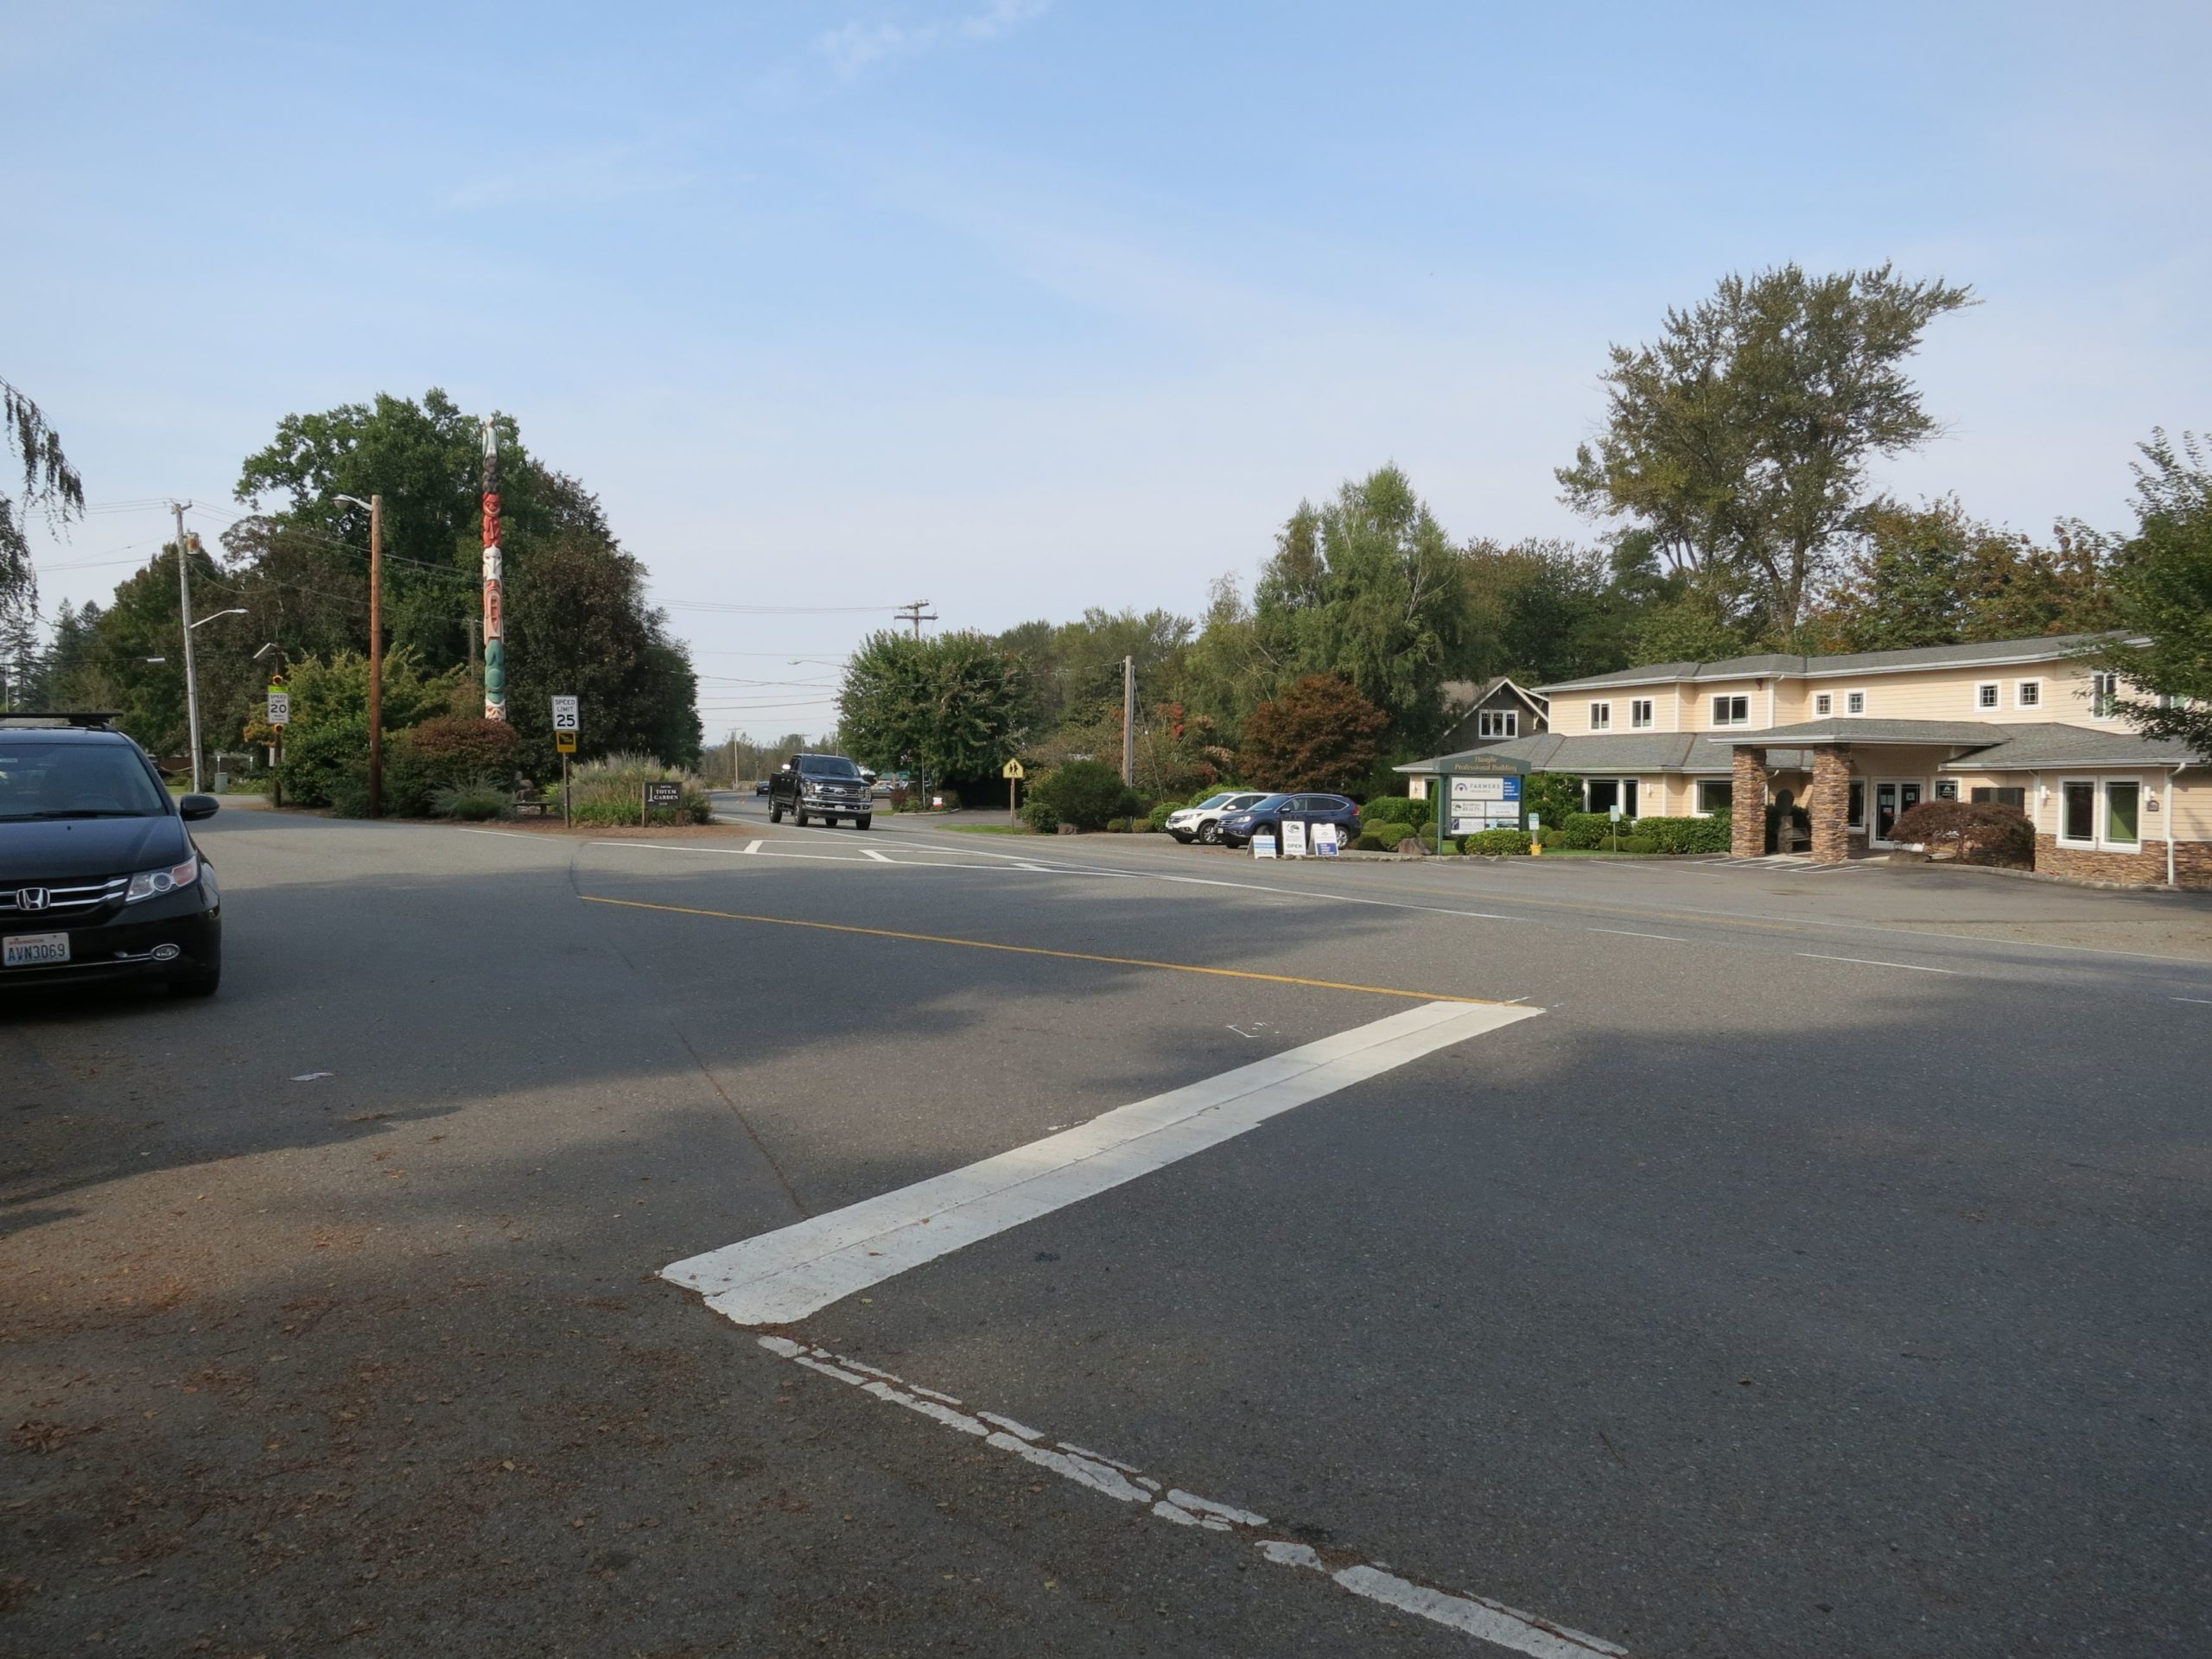 Image of SR 202 at the intersection of Southeast 42nd Street/Southeast 334th Place in Fall City.